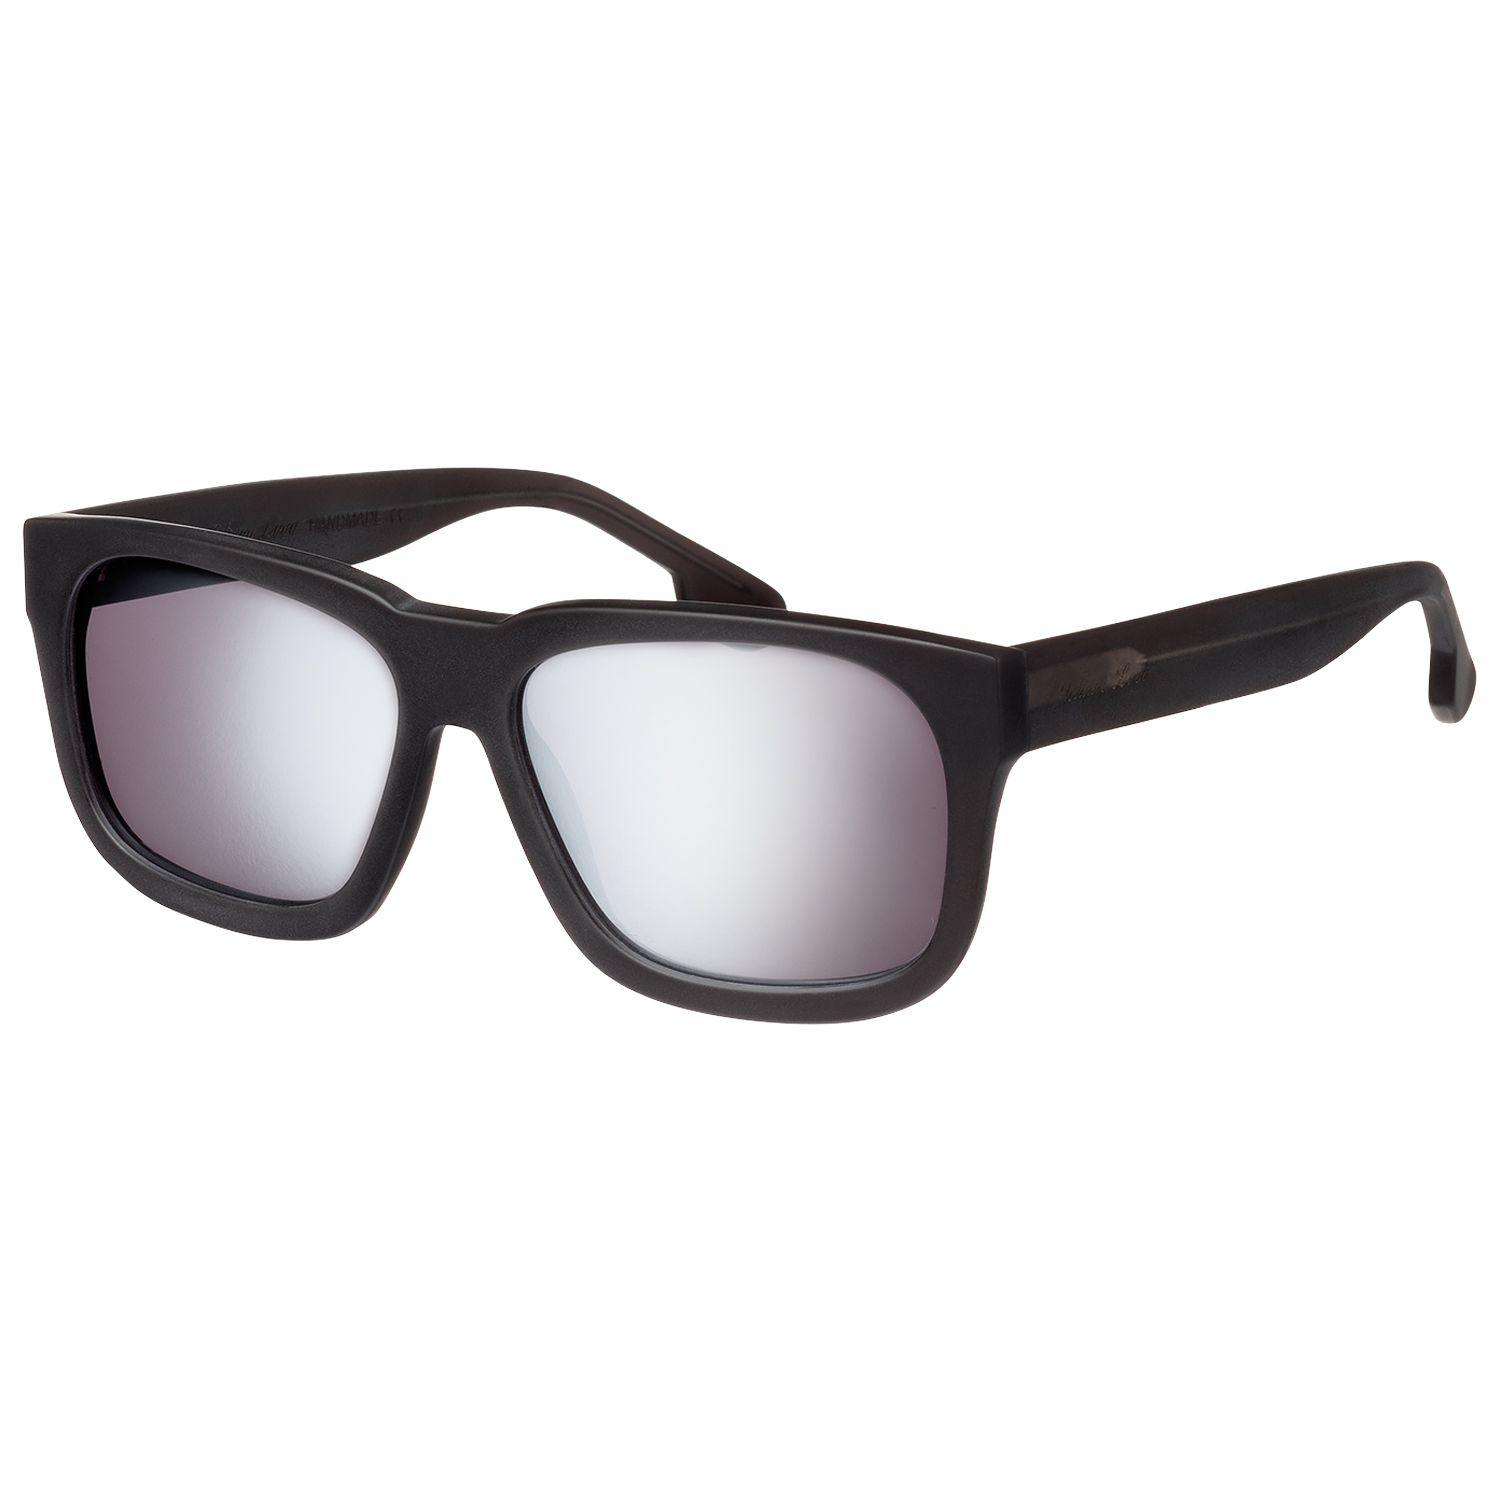 Johnny Loco Sunglasses JLE1505 MH3-S 54 The Dude Grey